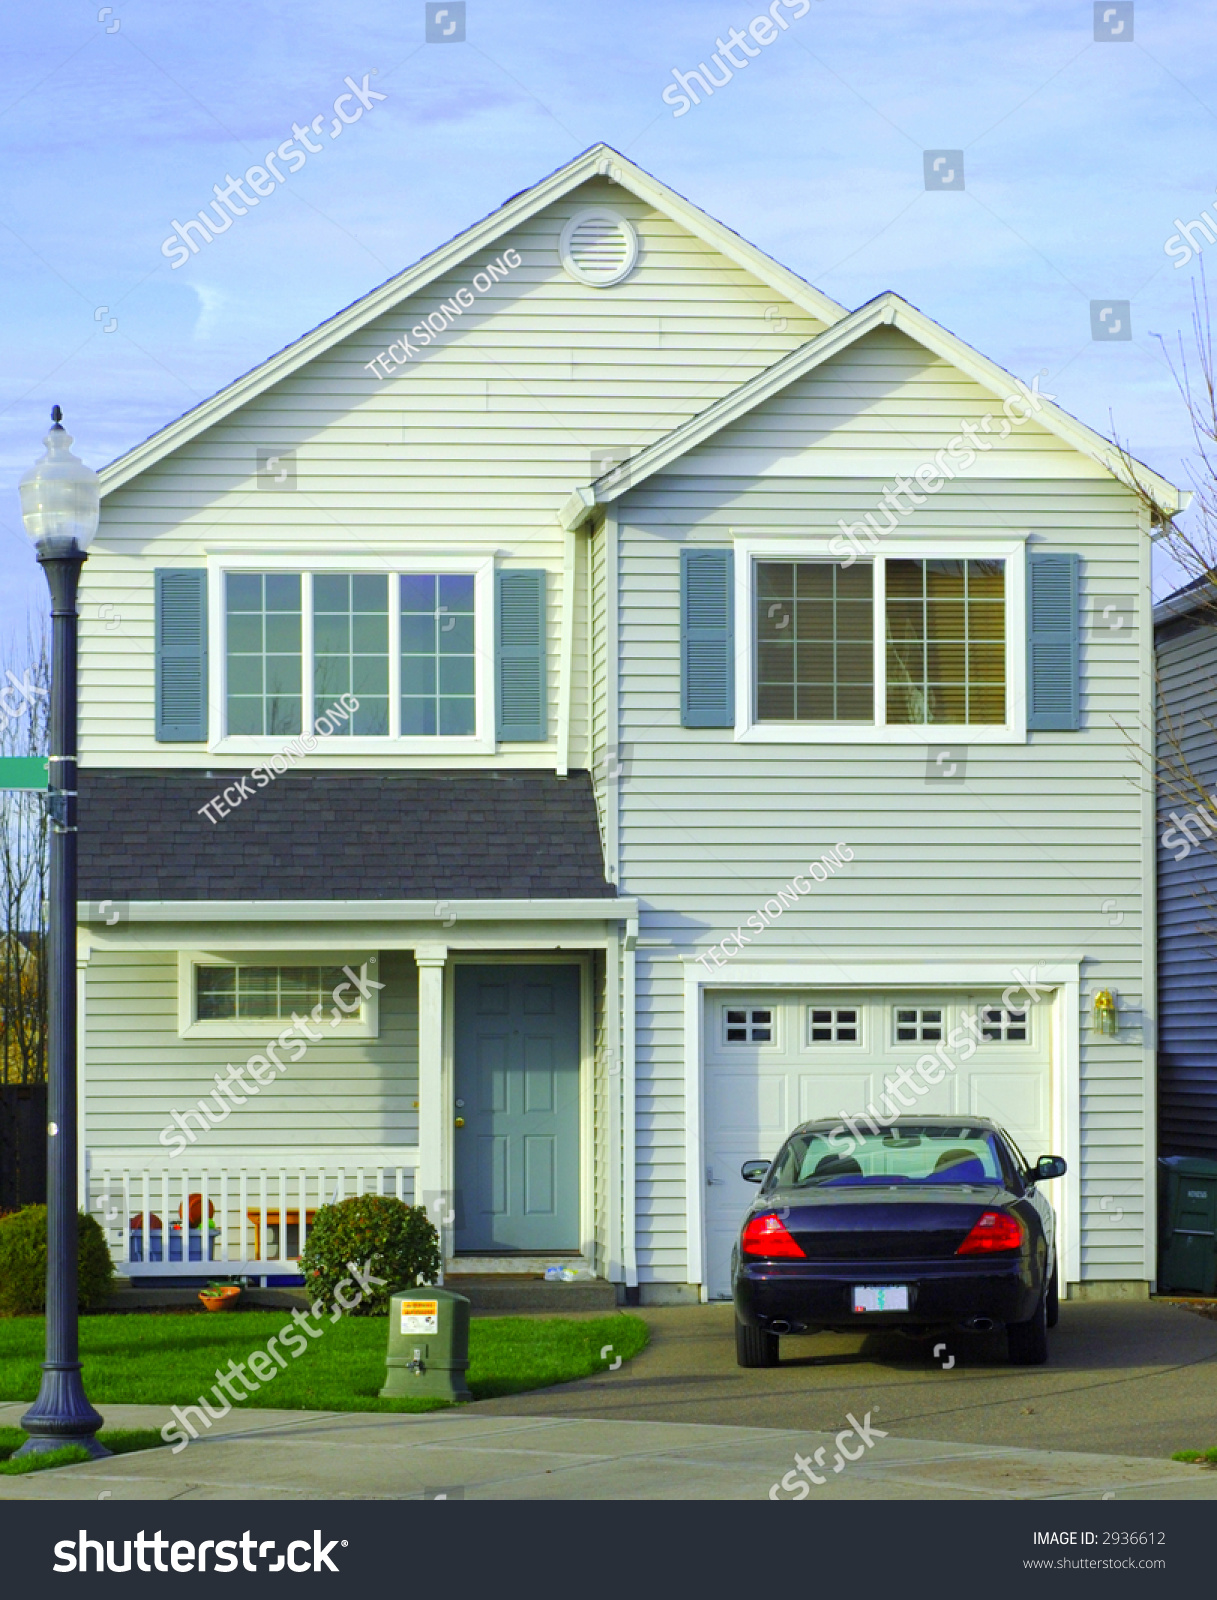 Front view house car parking front stock photo 2936612 for House with a view